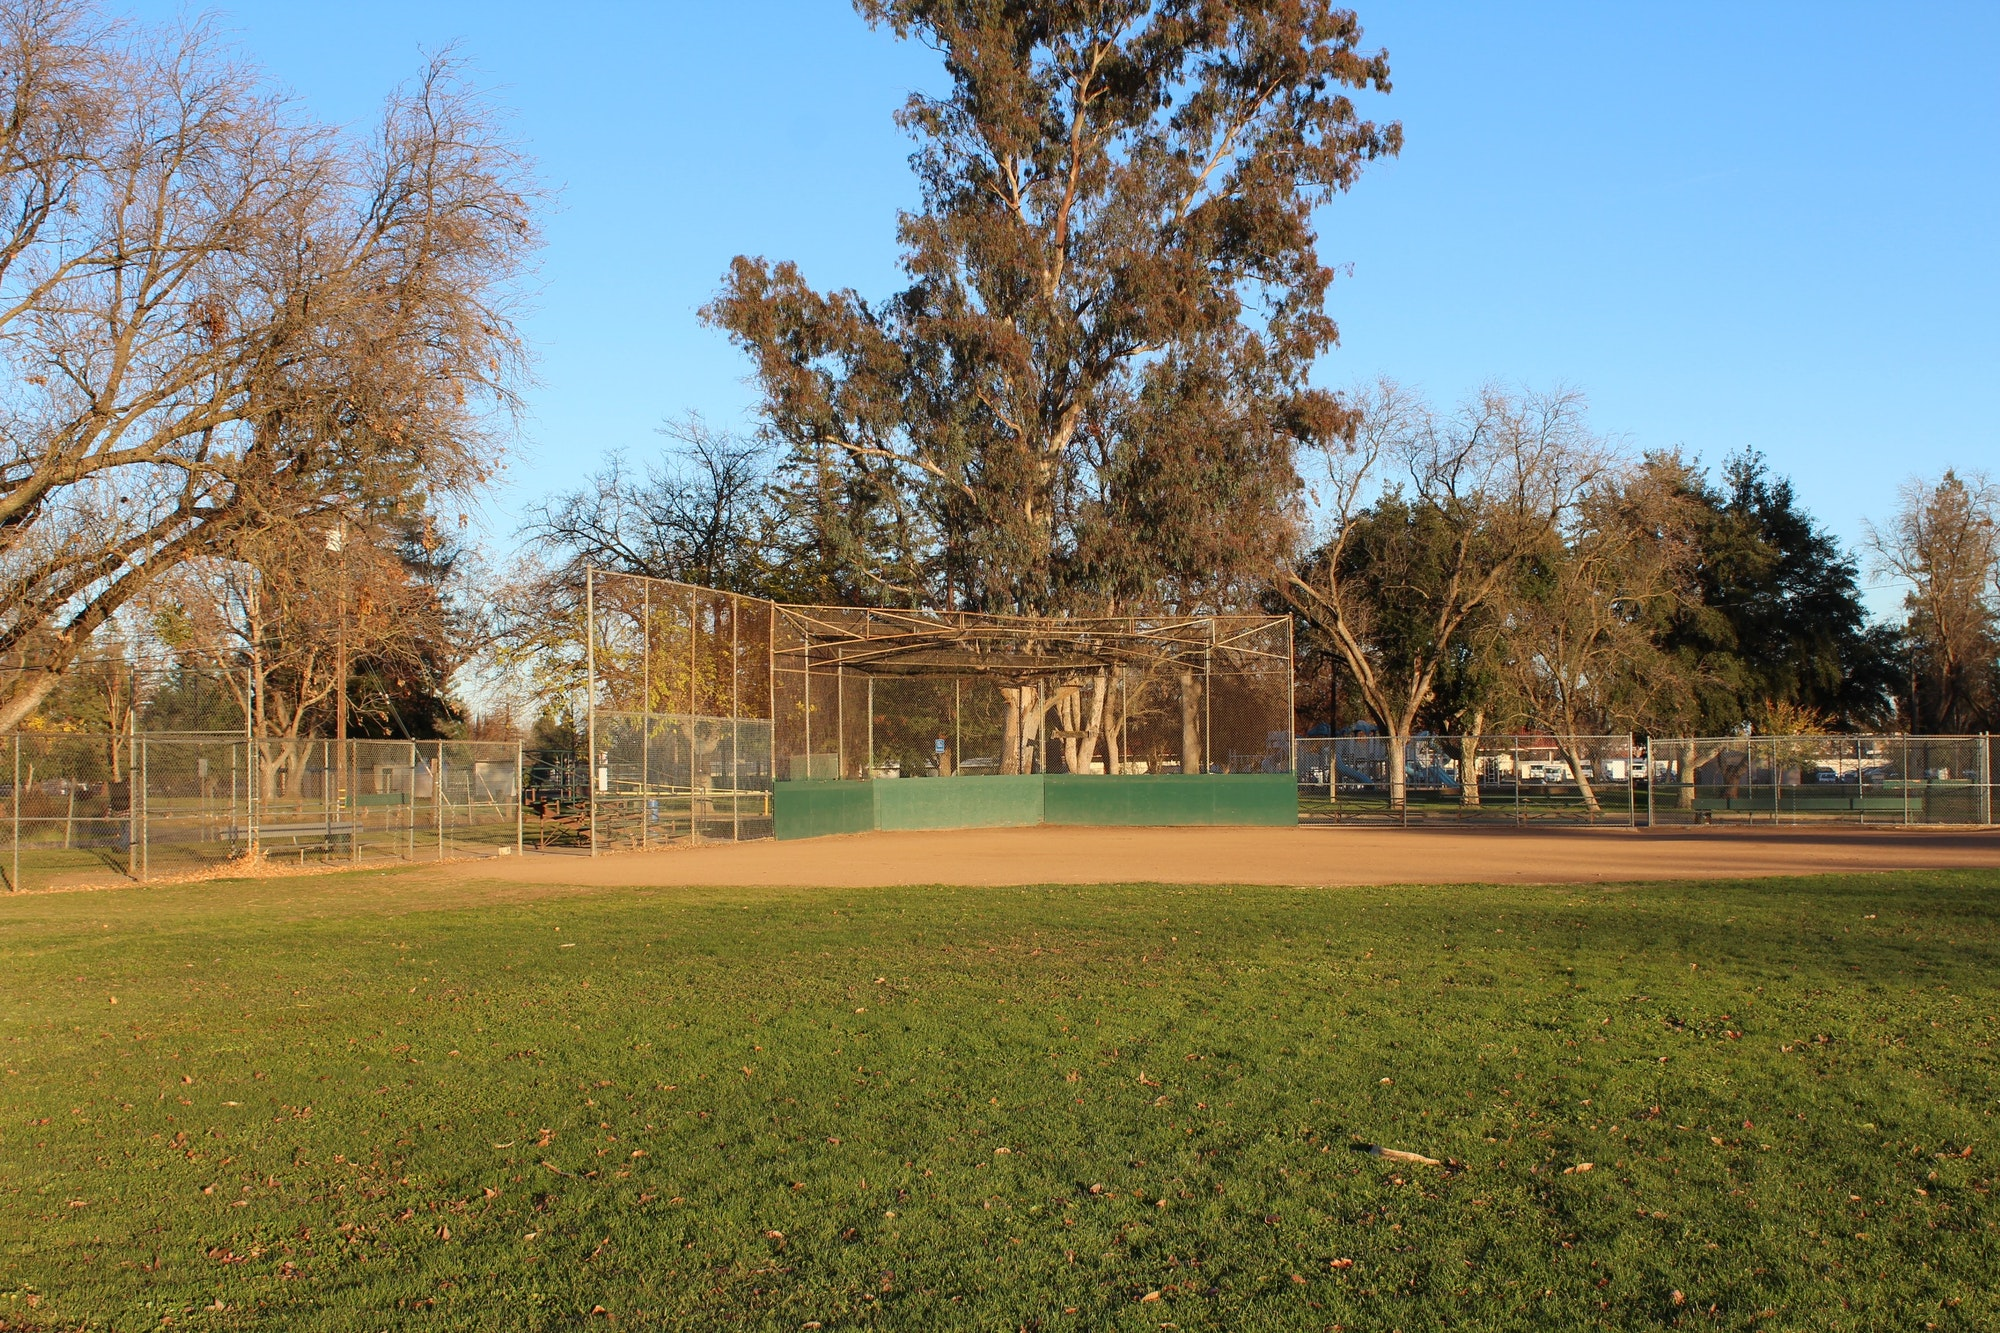 Softball Field at Carmichael Park